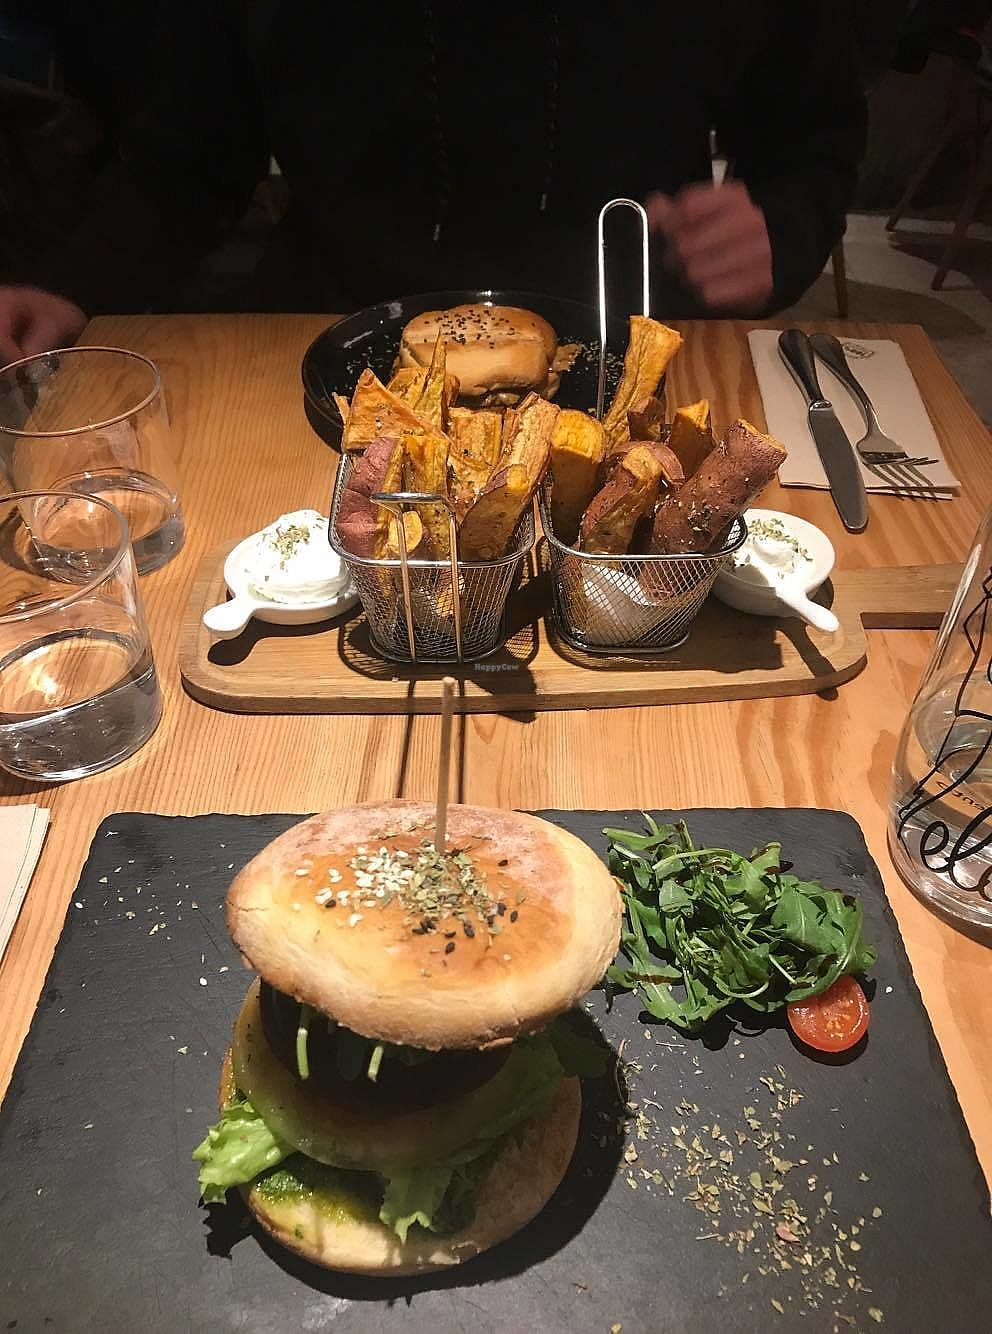 """Photo of Ao 26 - Vegan Food Project  by <a href=""""/members/profile/Lara-RoseTadman"""">Lara-RoseTadman</a> <br/>Bloody beet burger, sweet potato chips with vegan mayo and seitan sandwich in the back! <br/> April 15, 2018  - <a href='/contact/abuse/image/75593/386387'>Report</a>"""